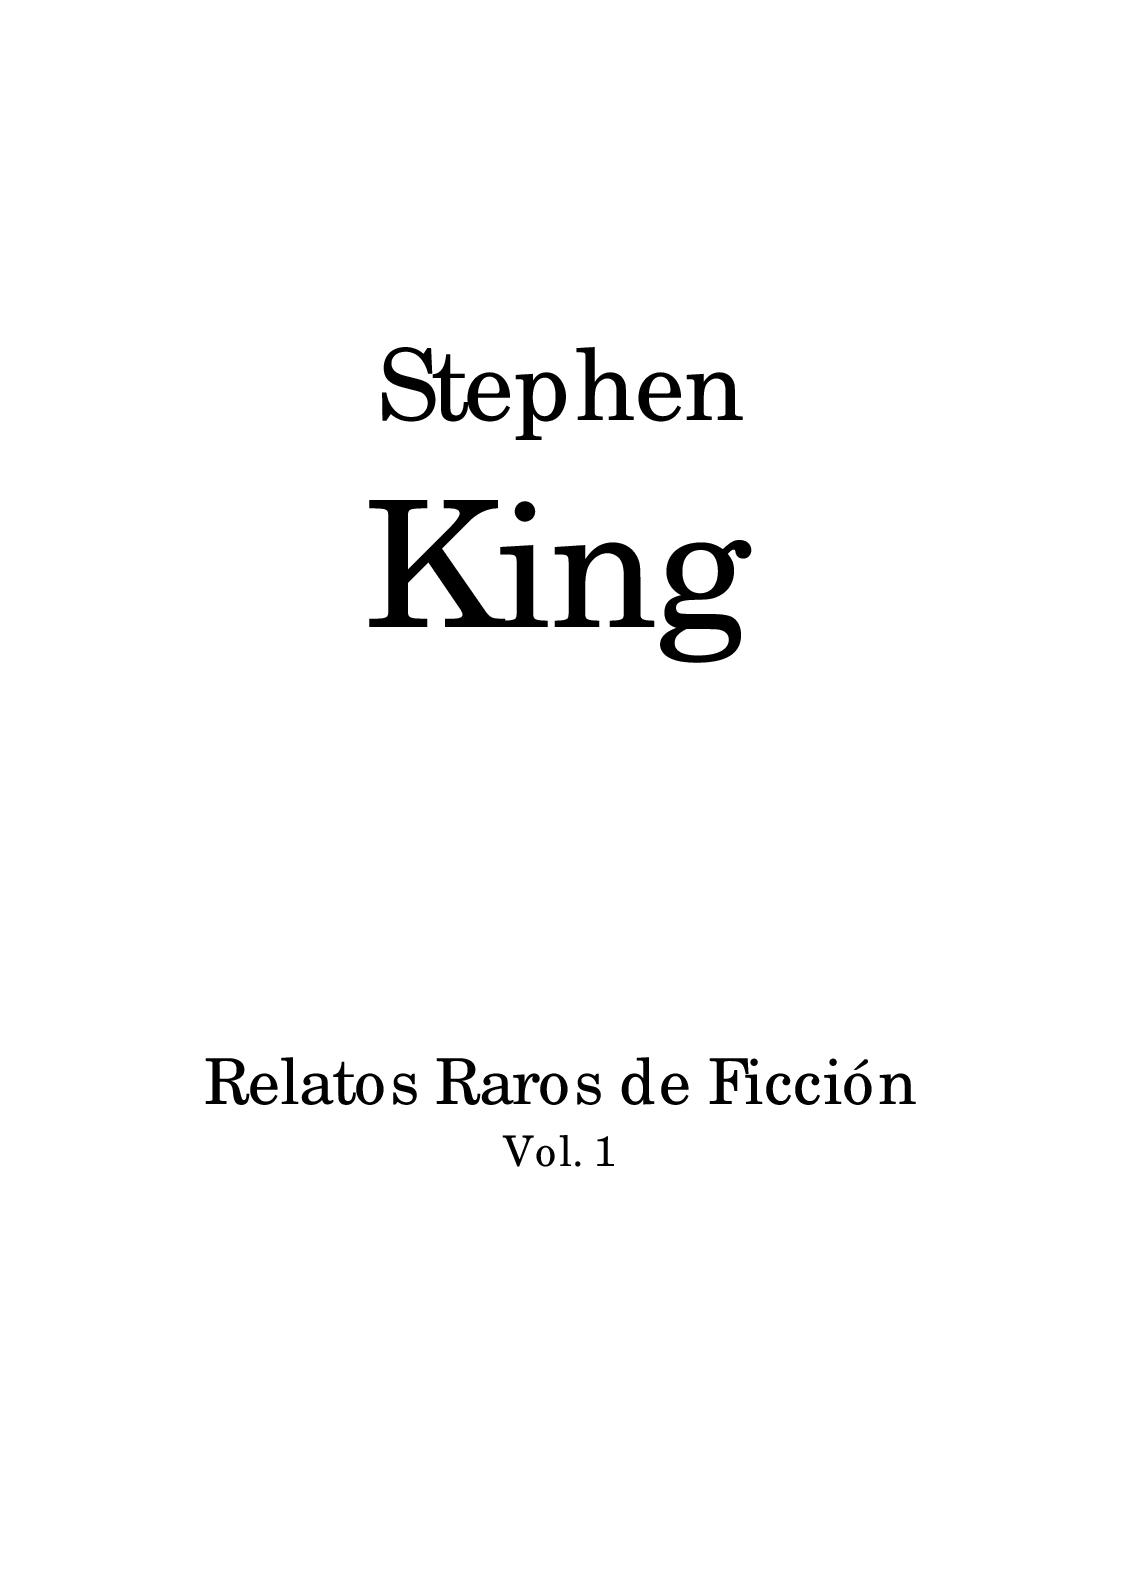 Calaméo - Stephen King Relatos Raros 2824de024b18